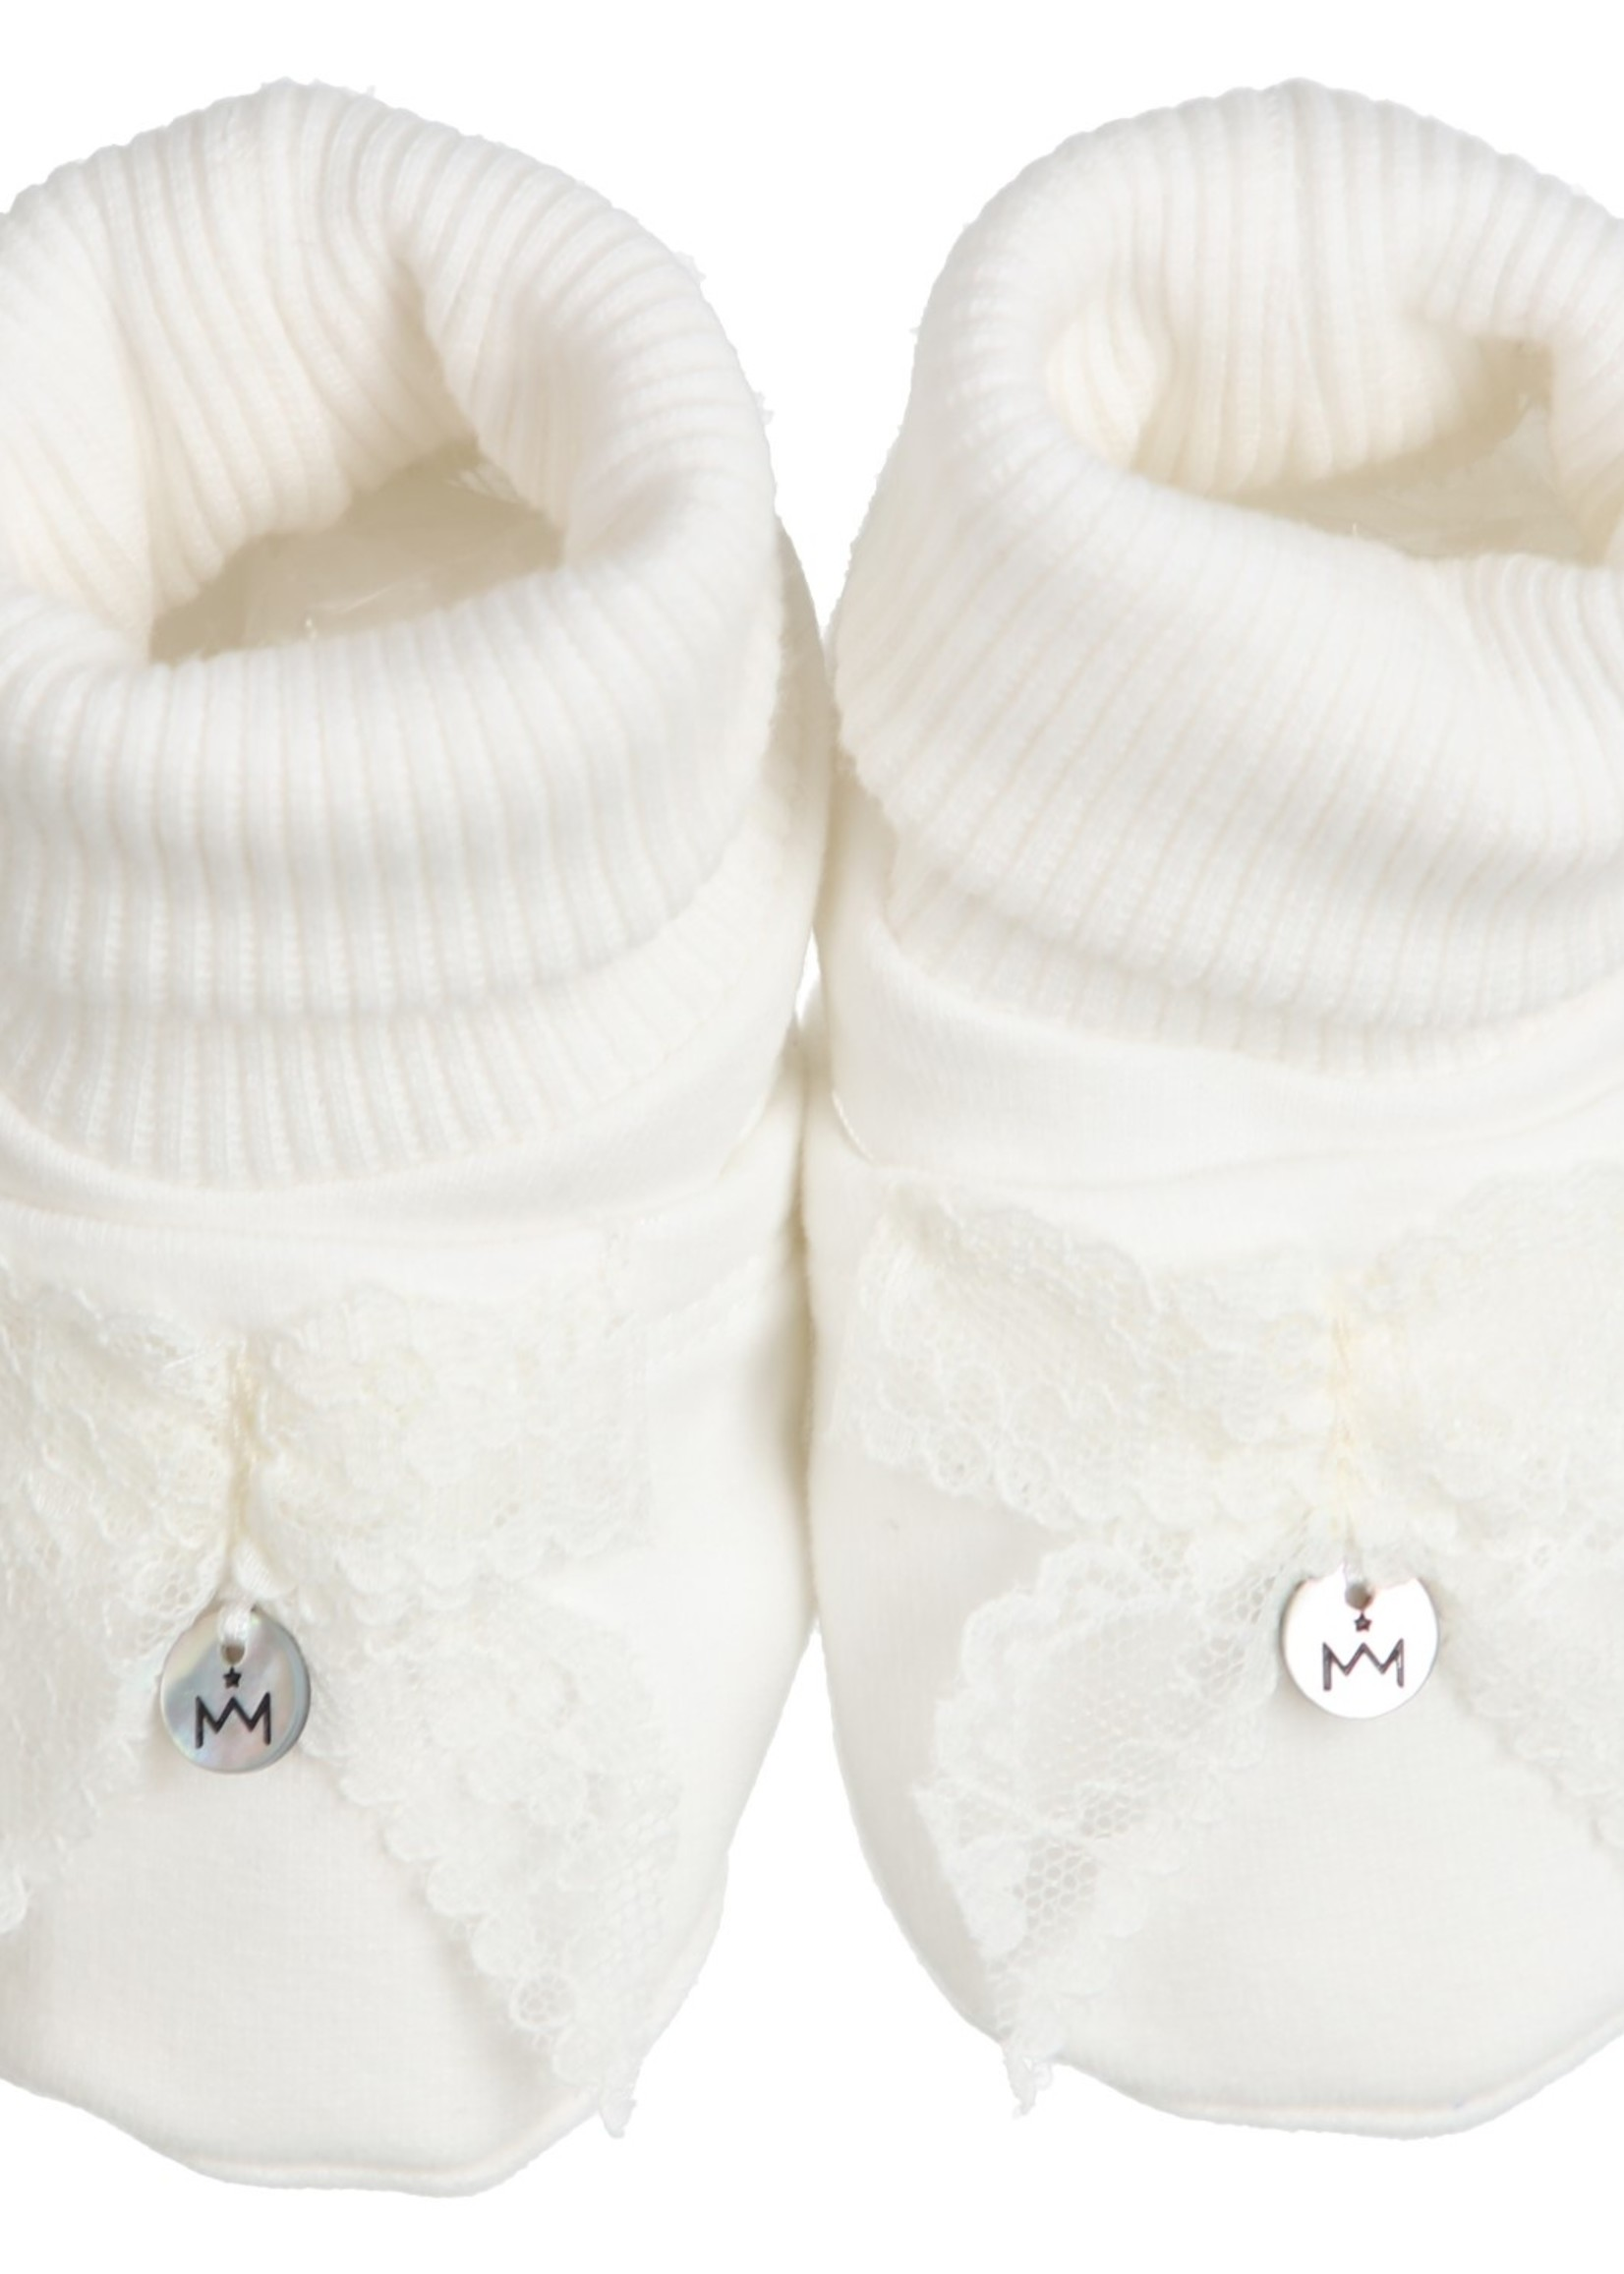 Gymp Gymp girls shoes lace bow CARBONDOUX offwhite